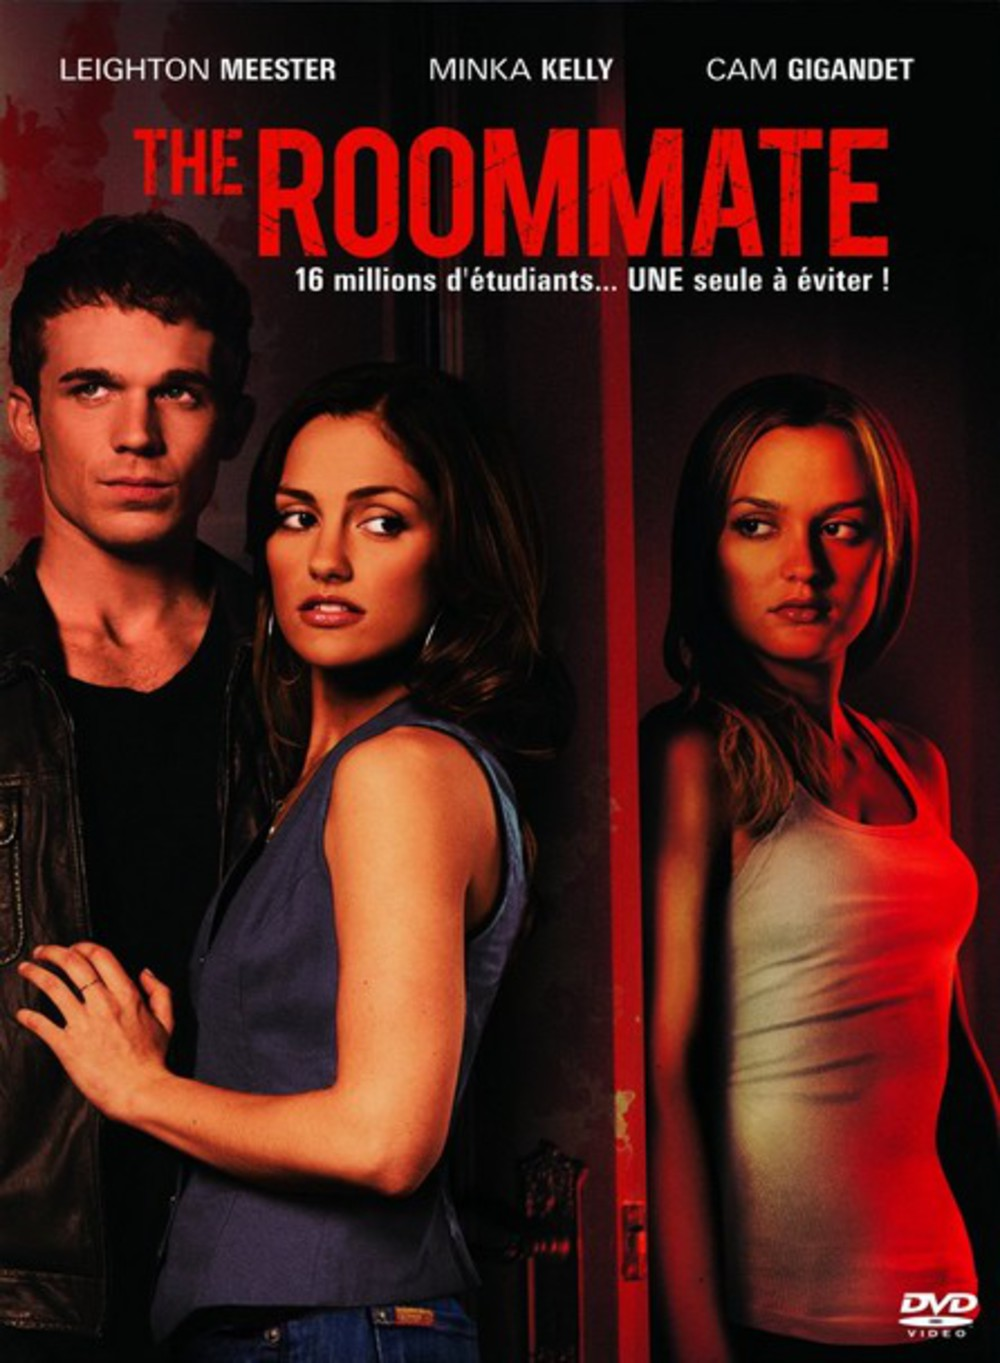 affiche du film The Roommate